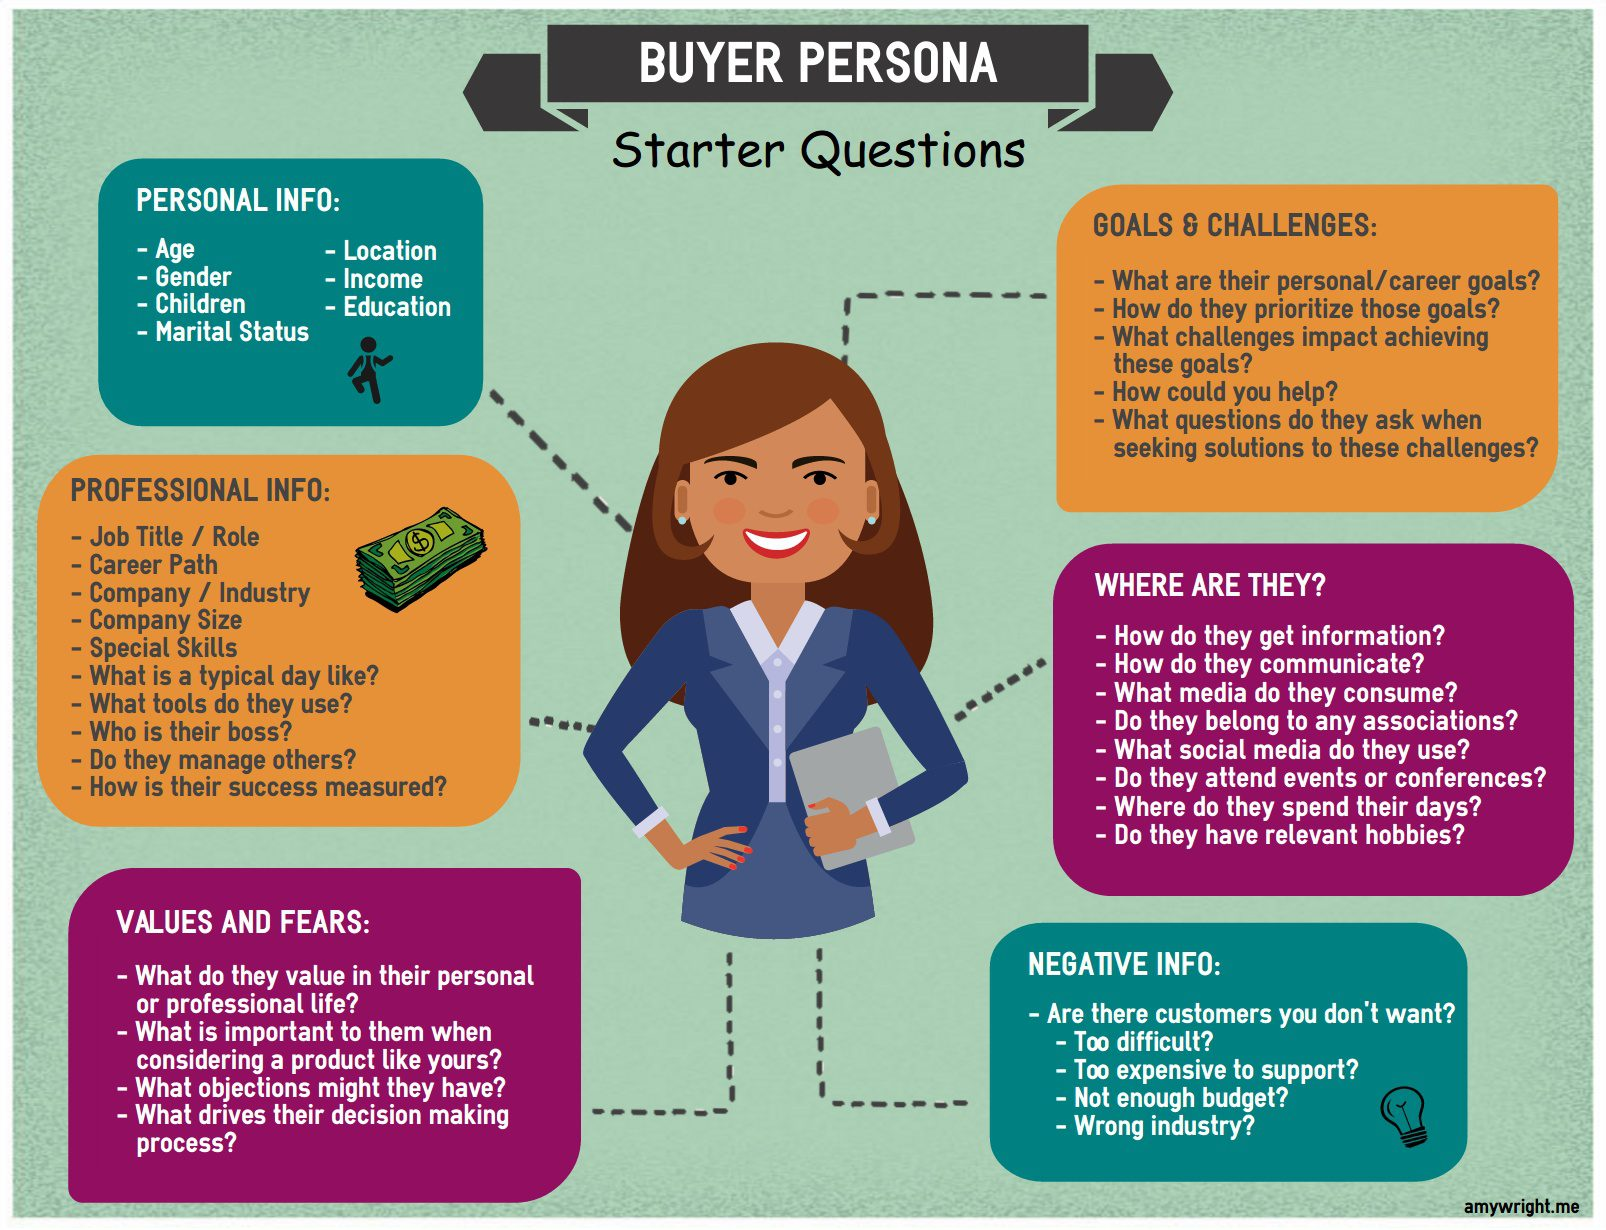 Make Your Buyer Persona